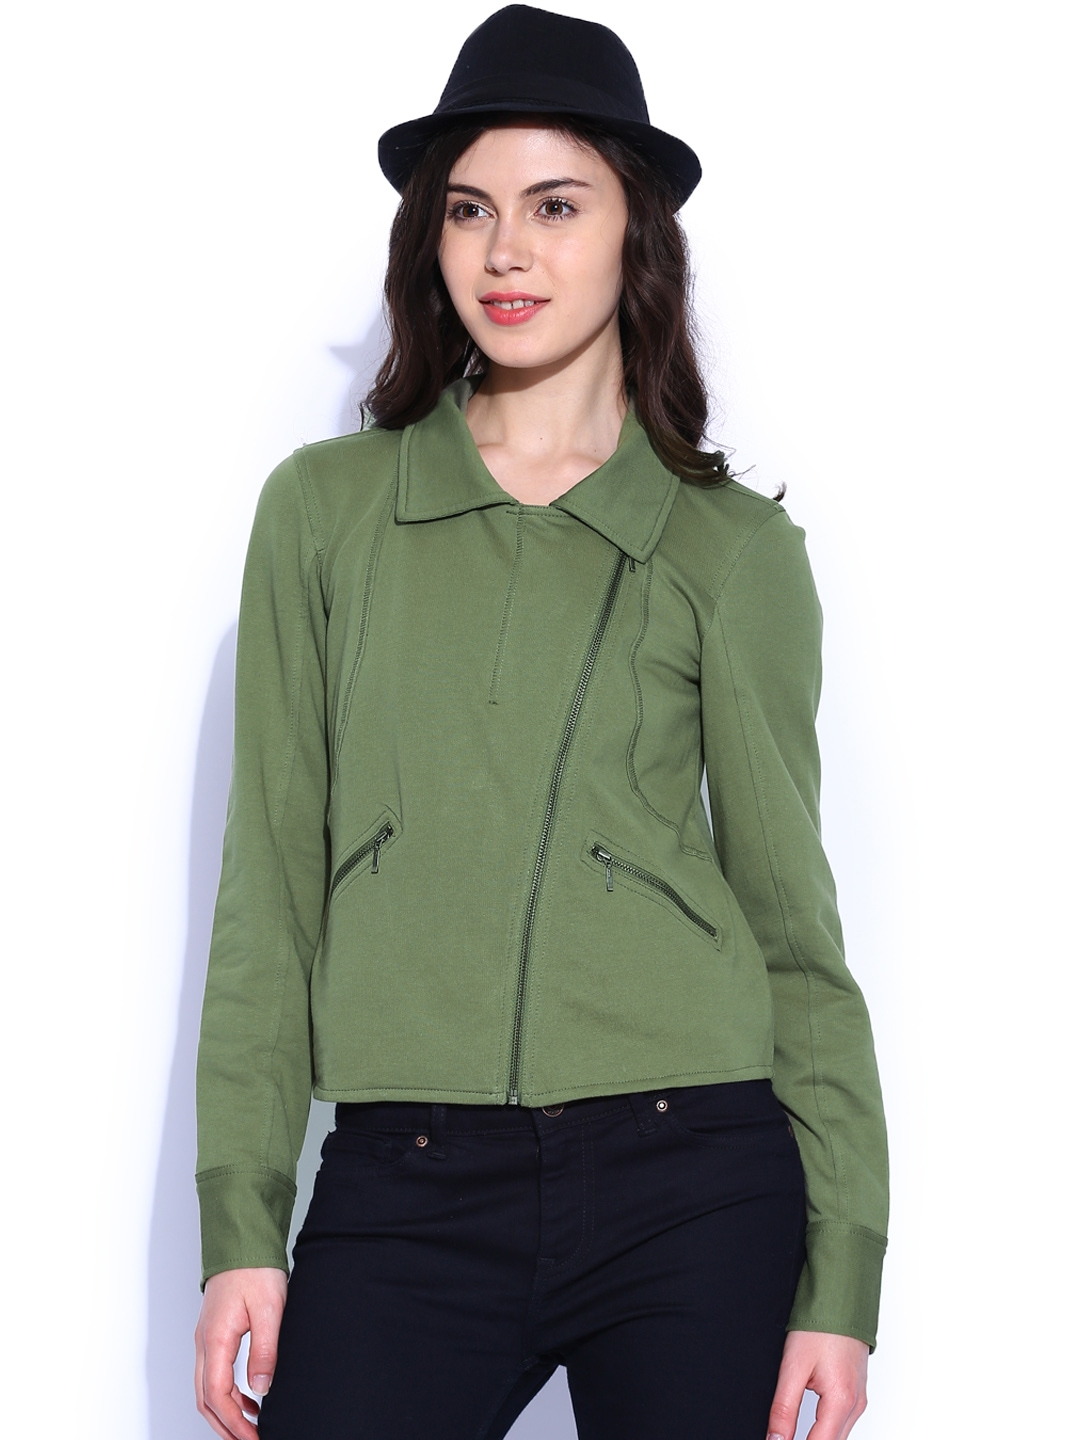 Find great deals on eBay for womens olive green jacket. Shop with confidence.